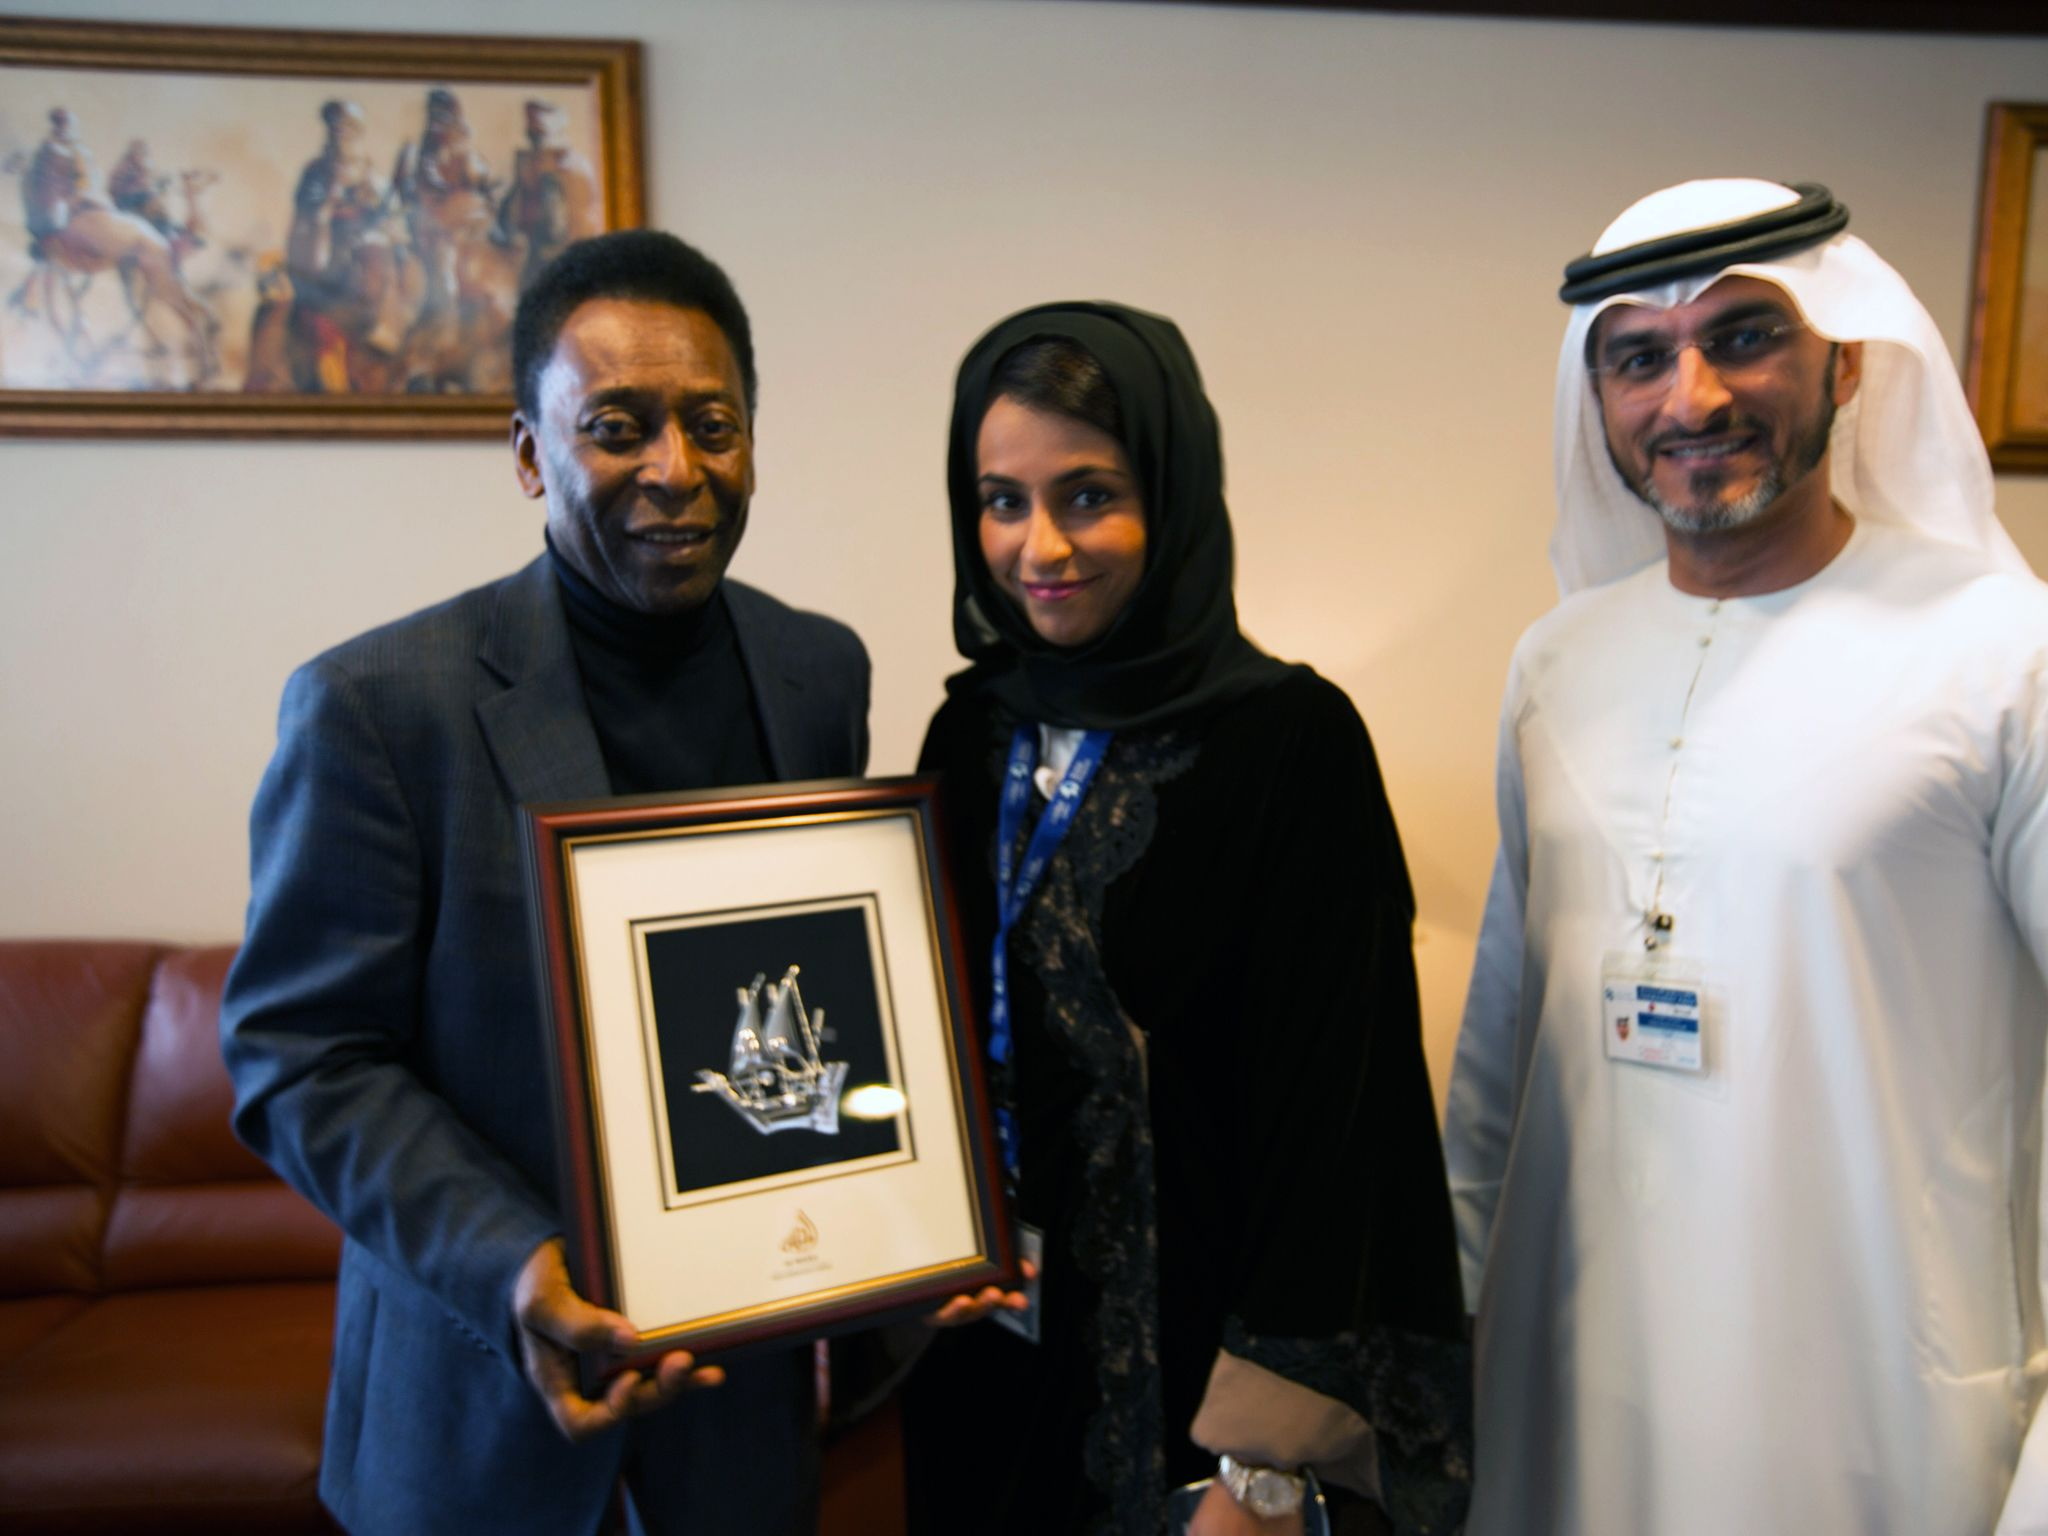 Dubai Airport, UAE: Pele poses for photos with Najla Al Midfa and Rabee Al Awadi. This image is... [Photo of the day - December 2014]